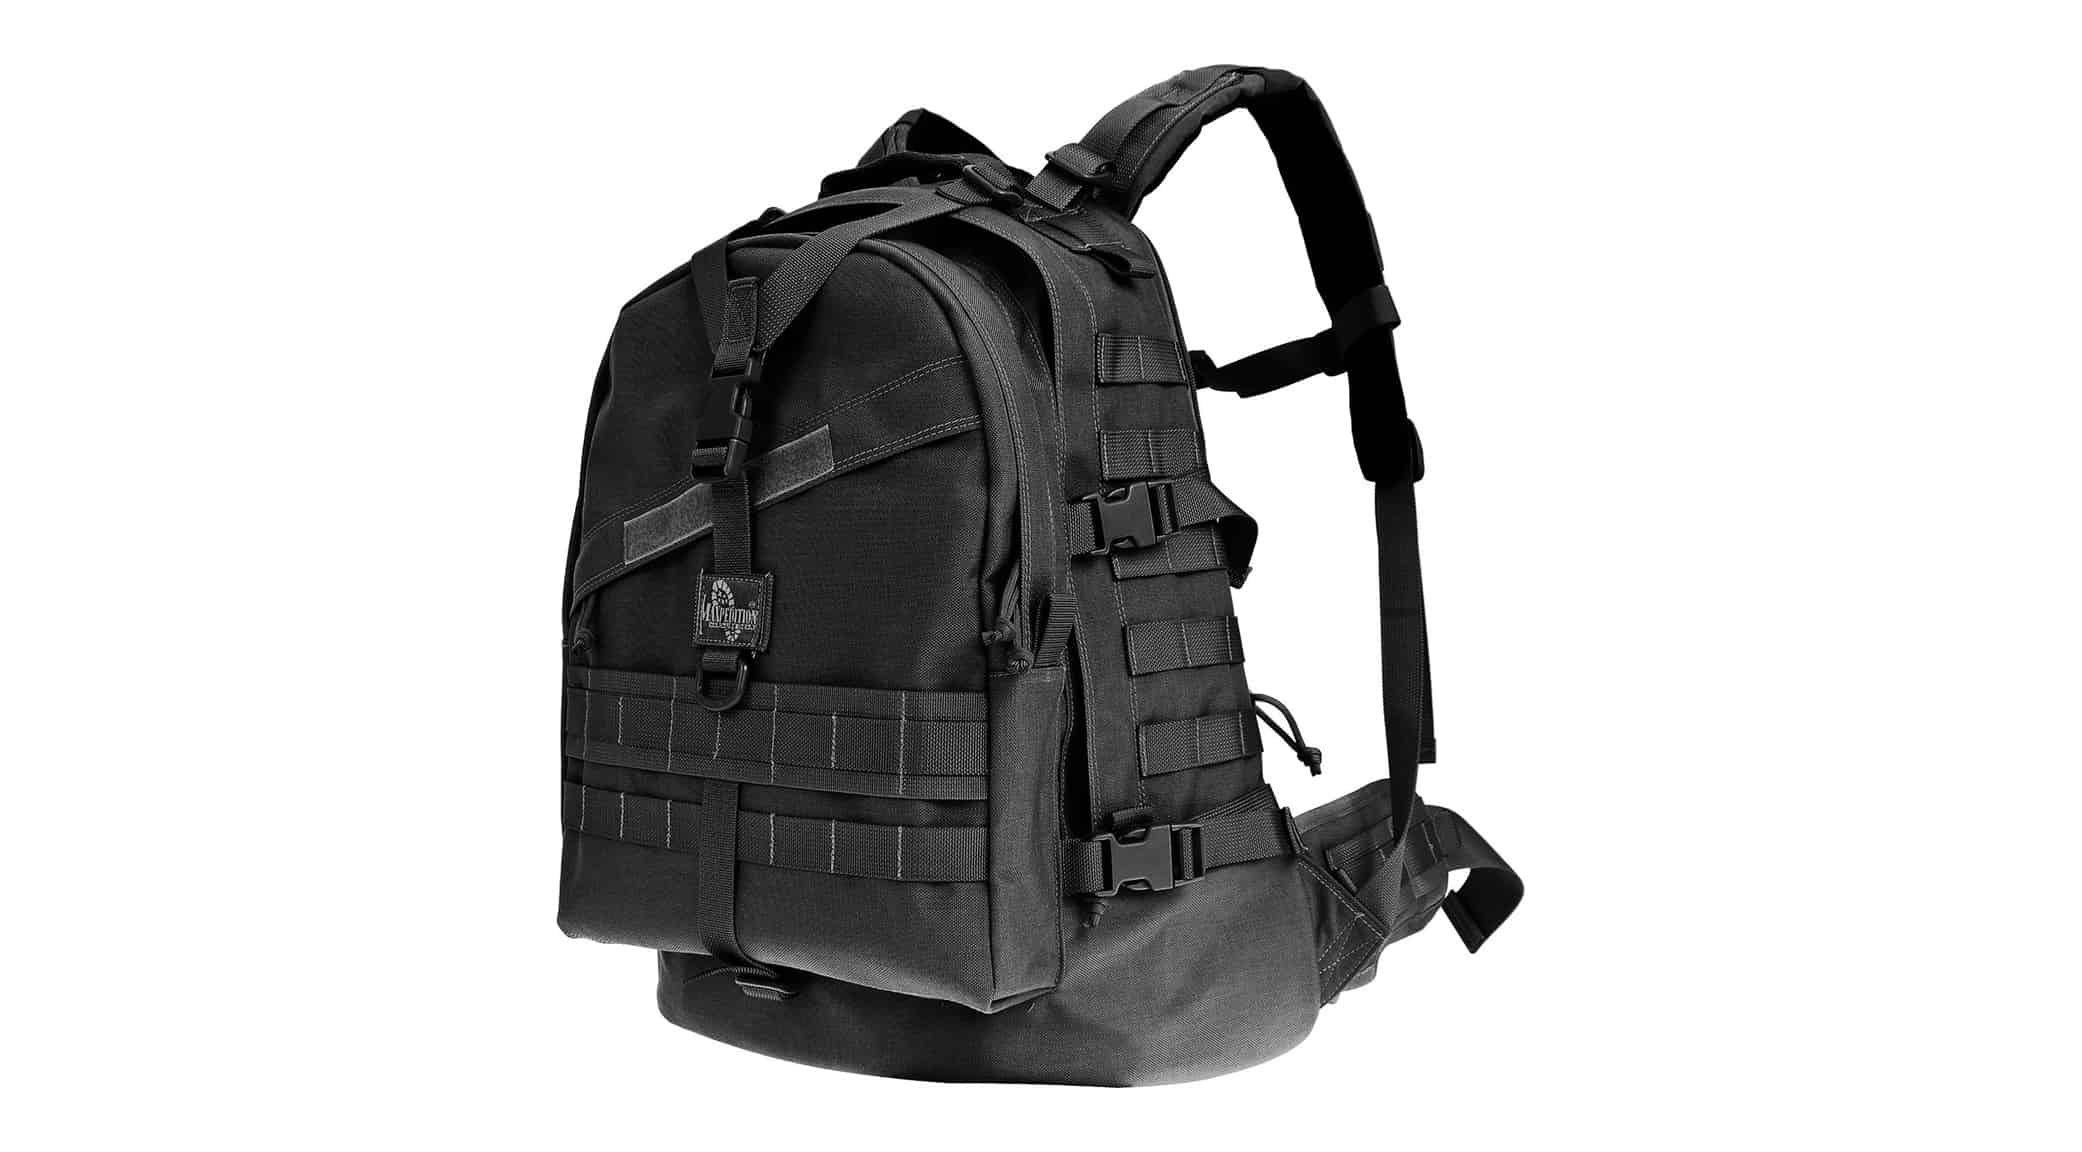 Maxpedition Vulture II Tactical Military Backpack